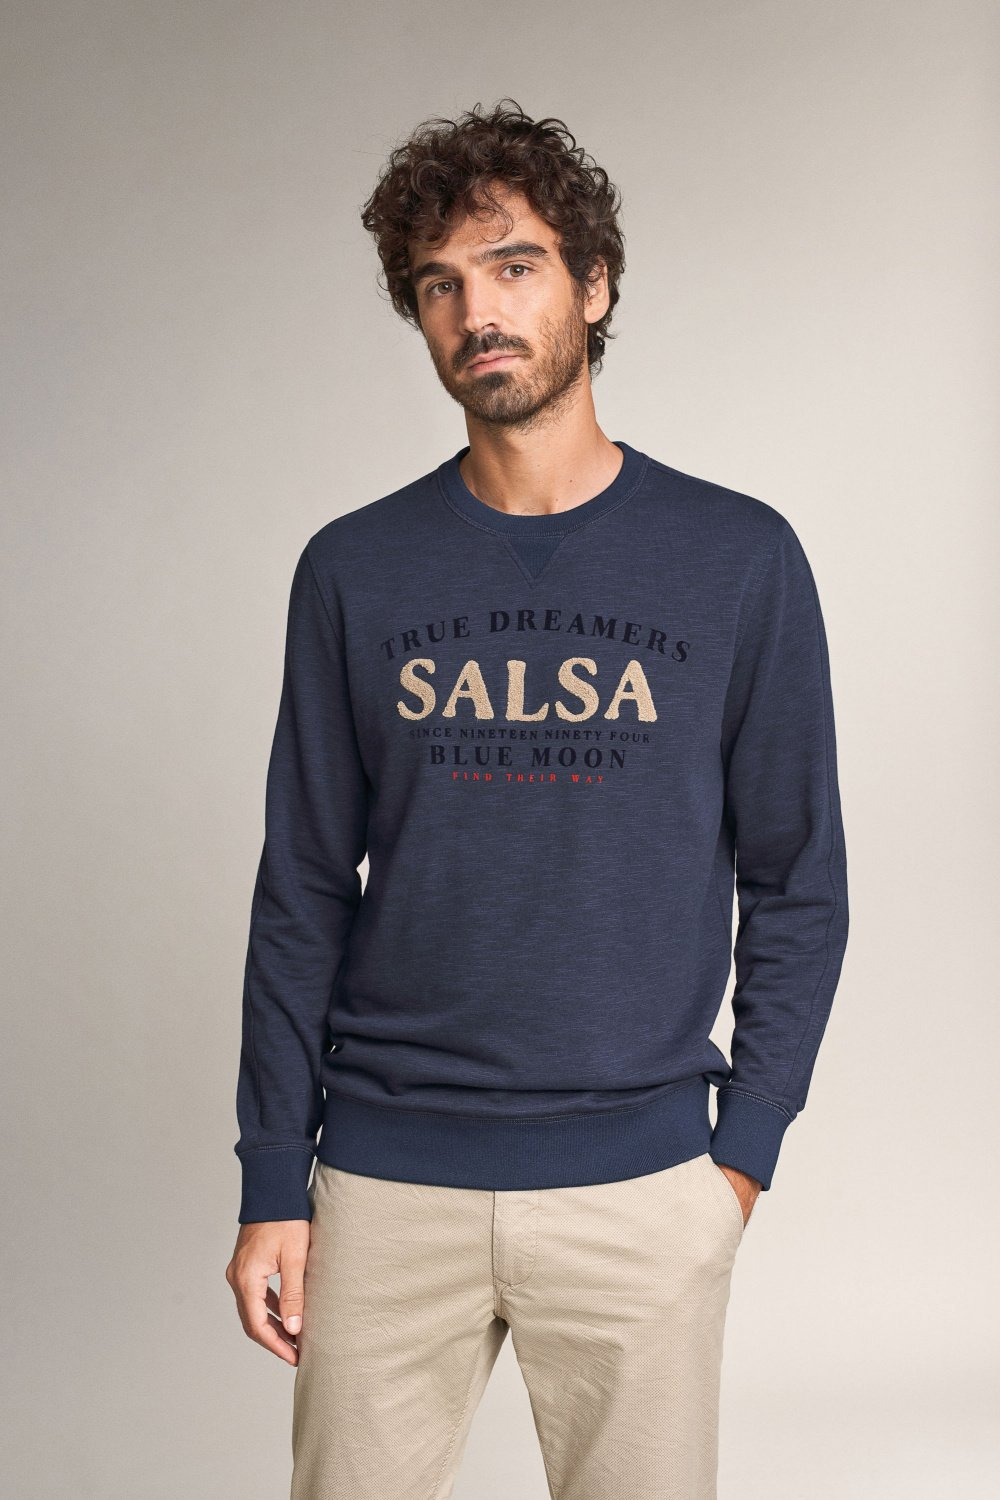 Salsa branded sweater - Salsa